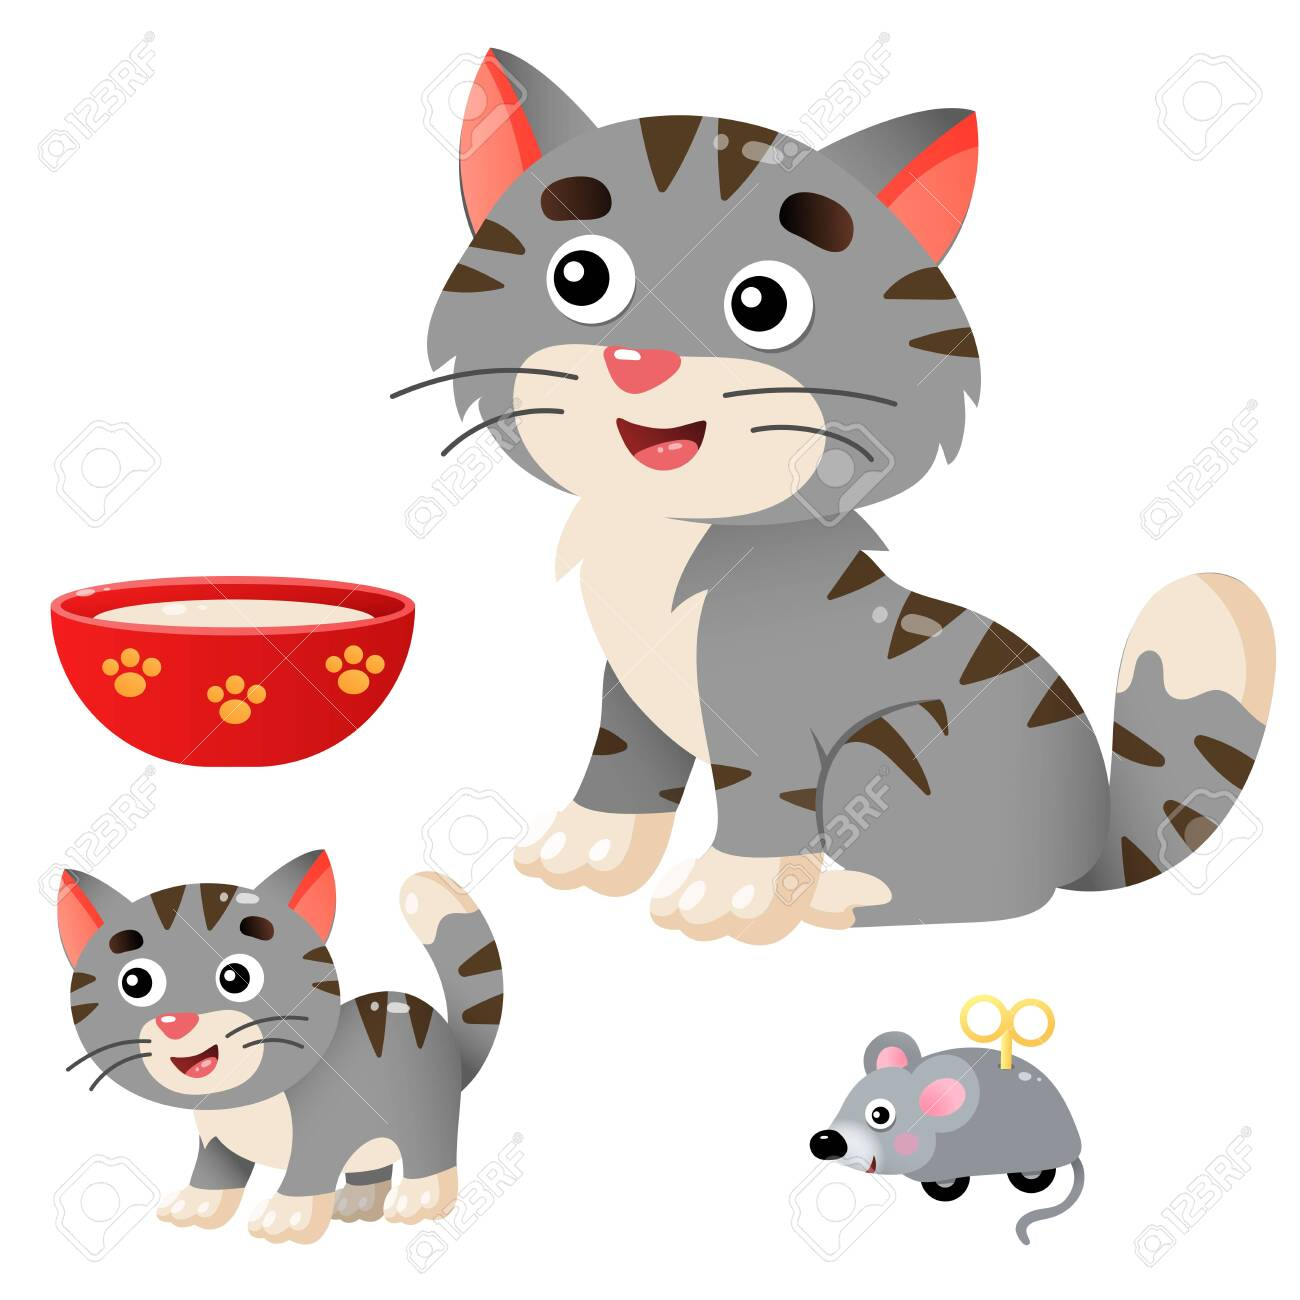 Color Images Of Cartoon Cat With Kitten On White Background Royalty Free Cliparts Vectors And Stock Illustration Image 135088221